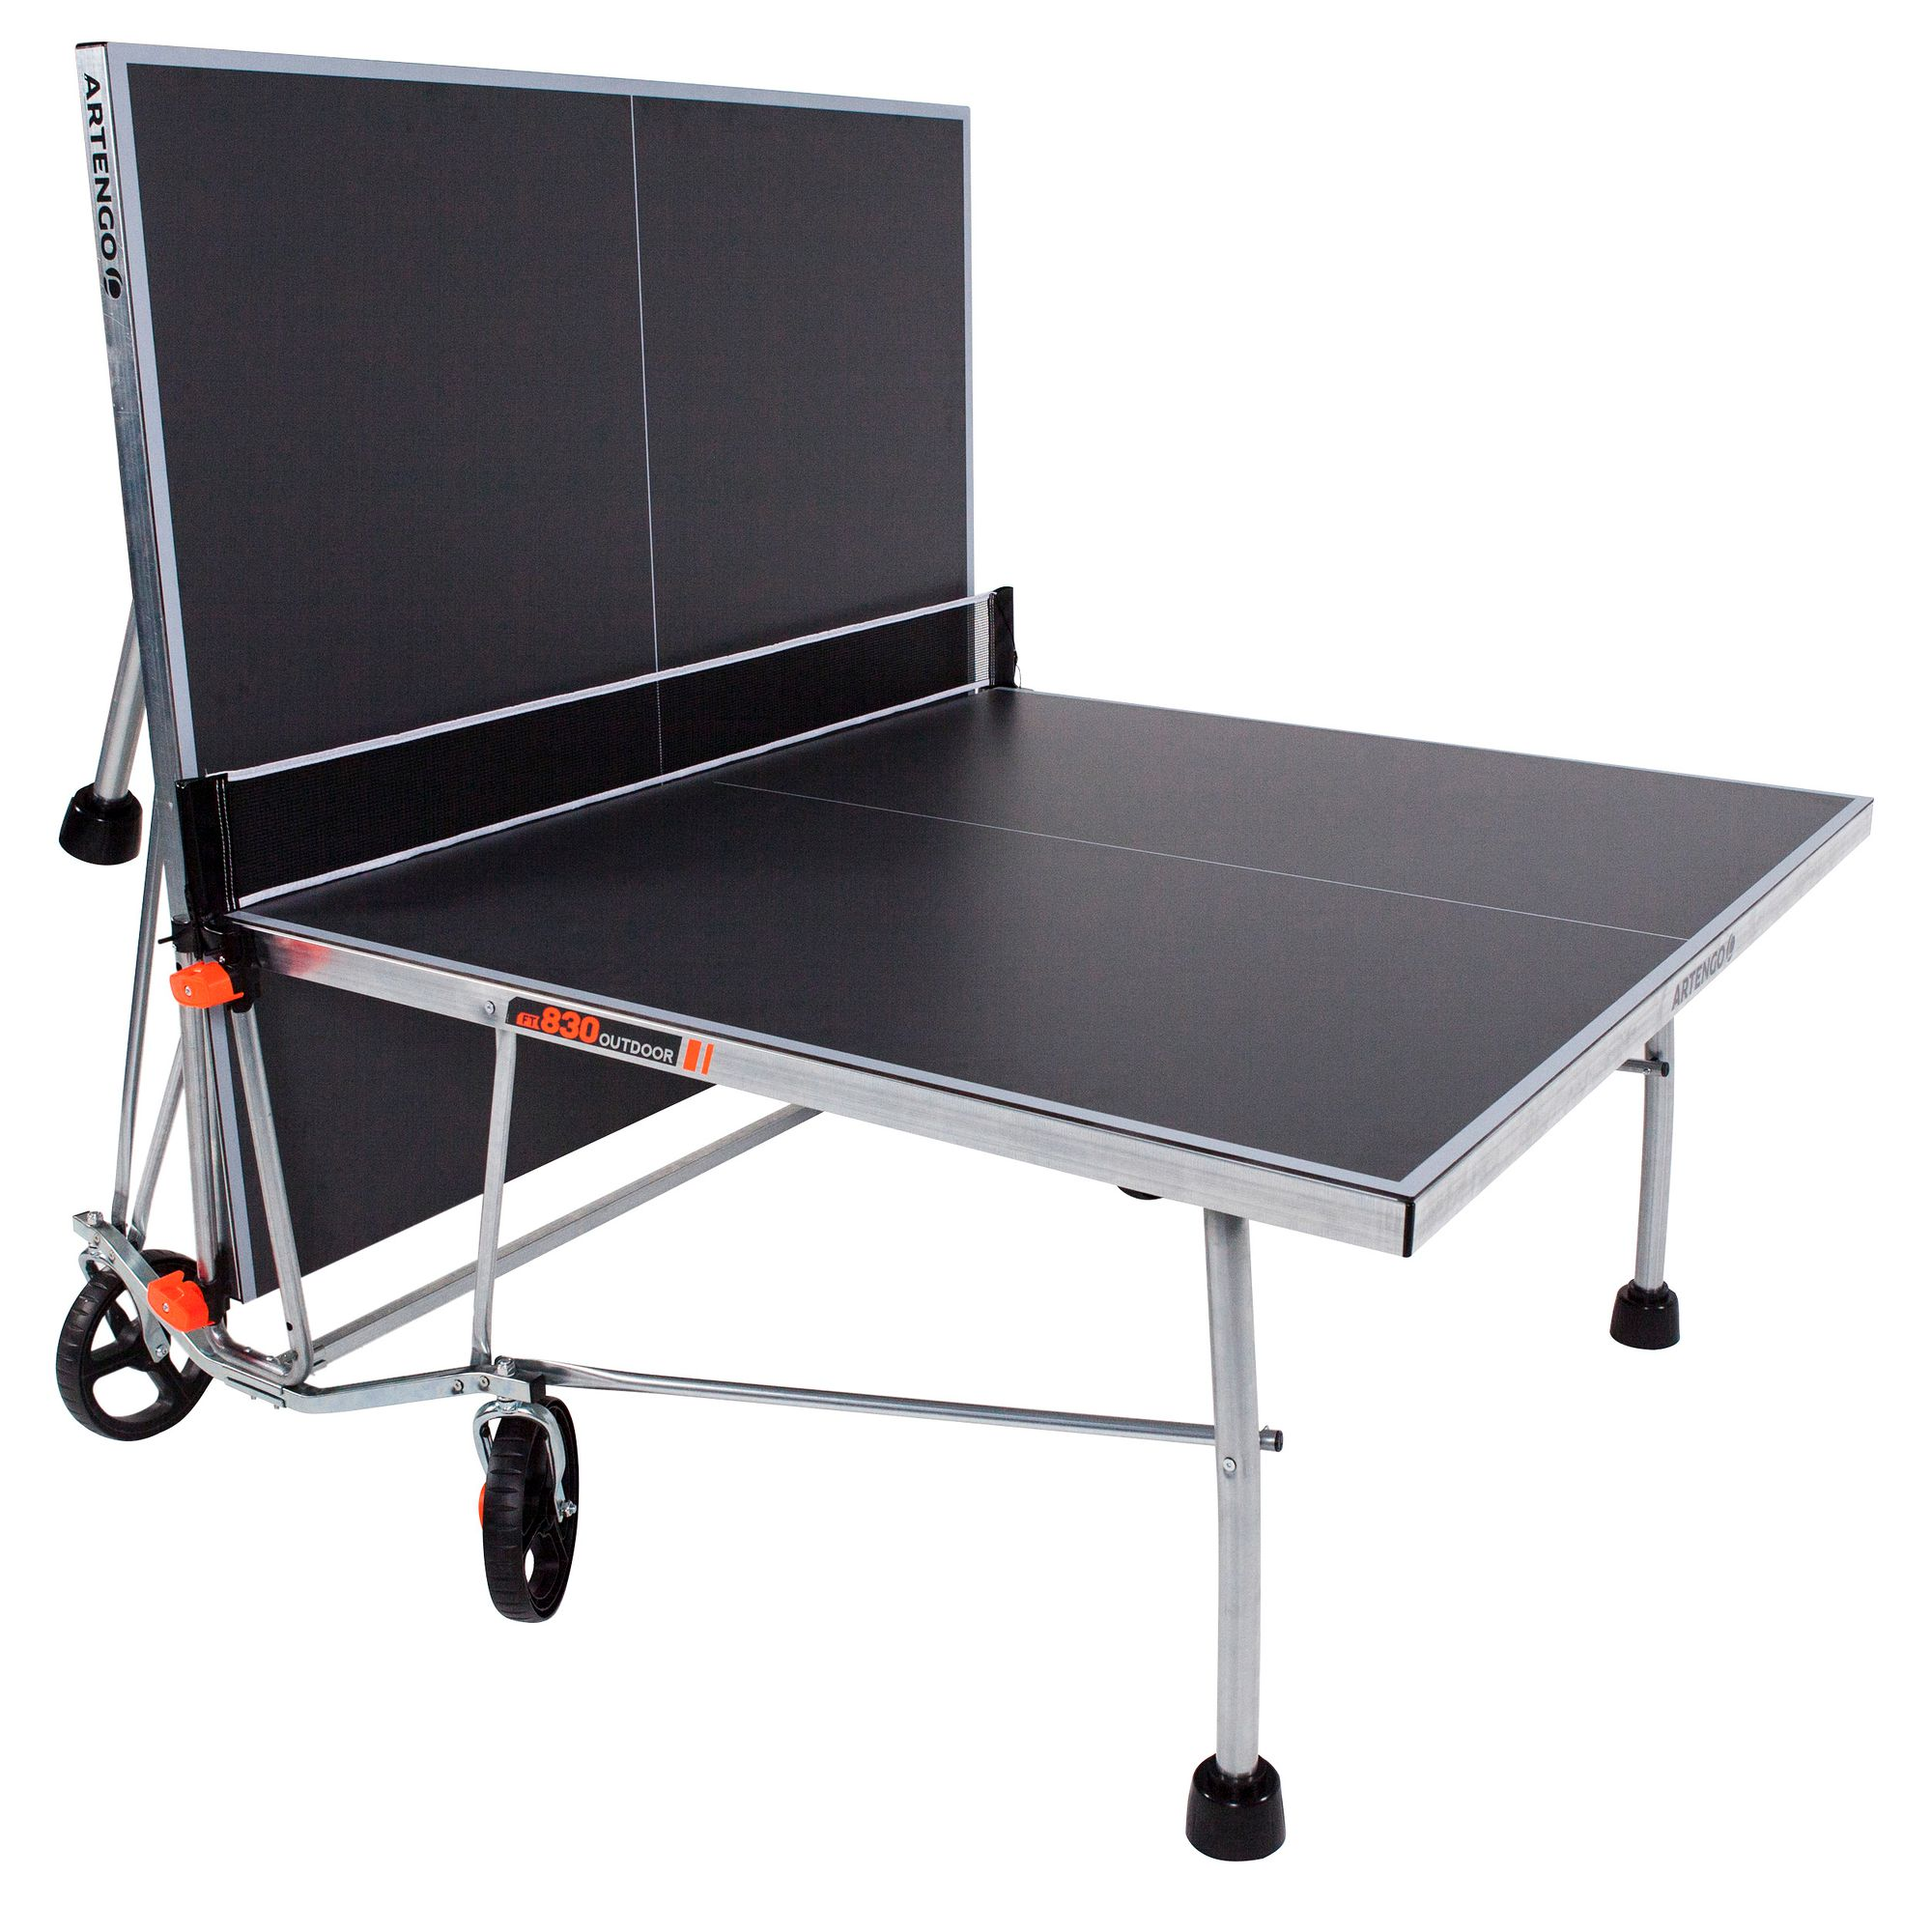 Table de tennis de table artengo ft830 outdoor clubs - Table de ping pong exterieur en solde ...